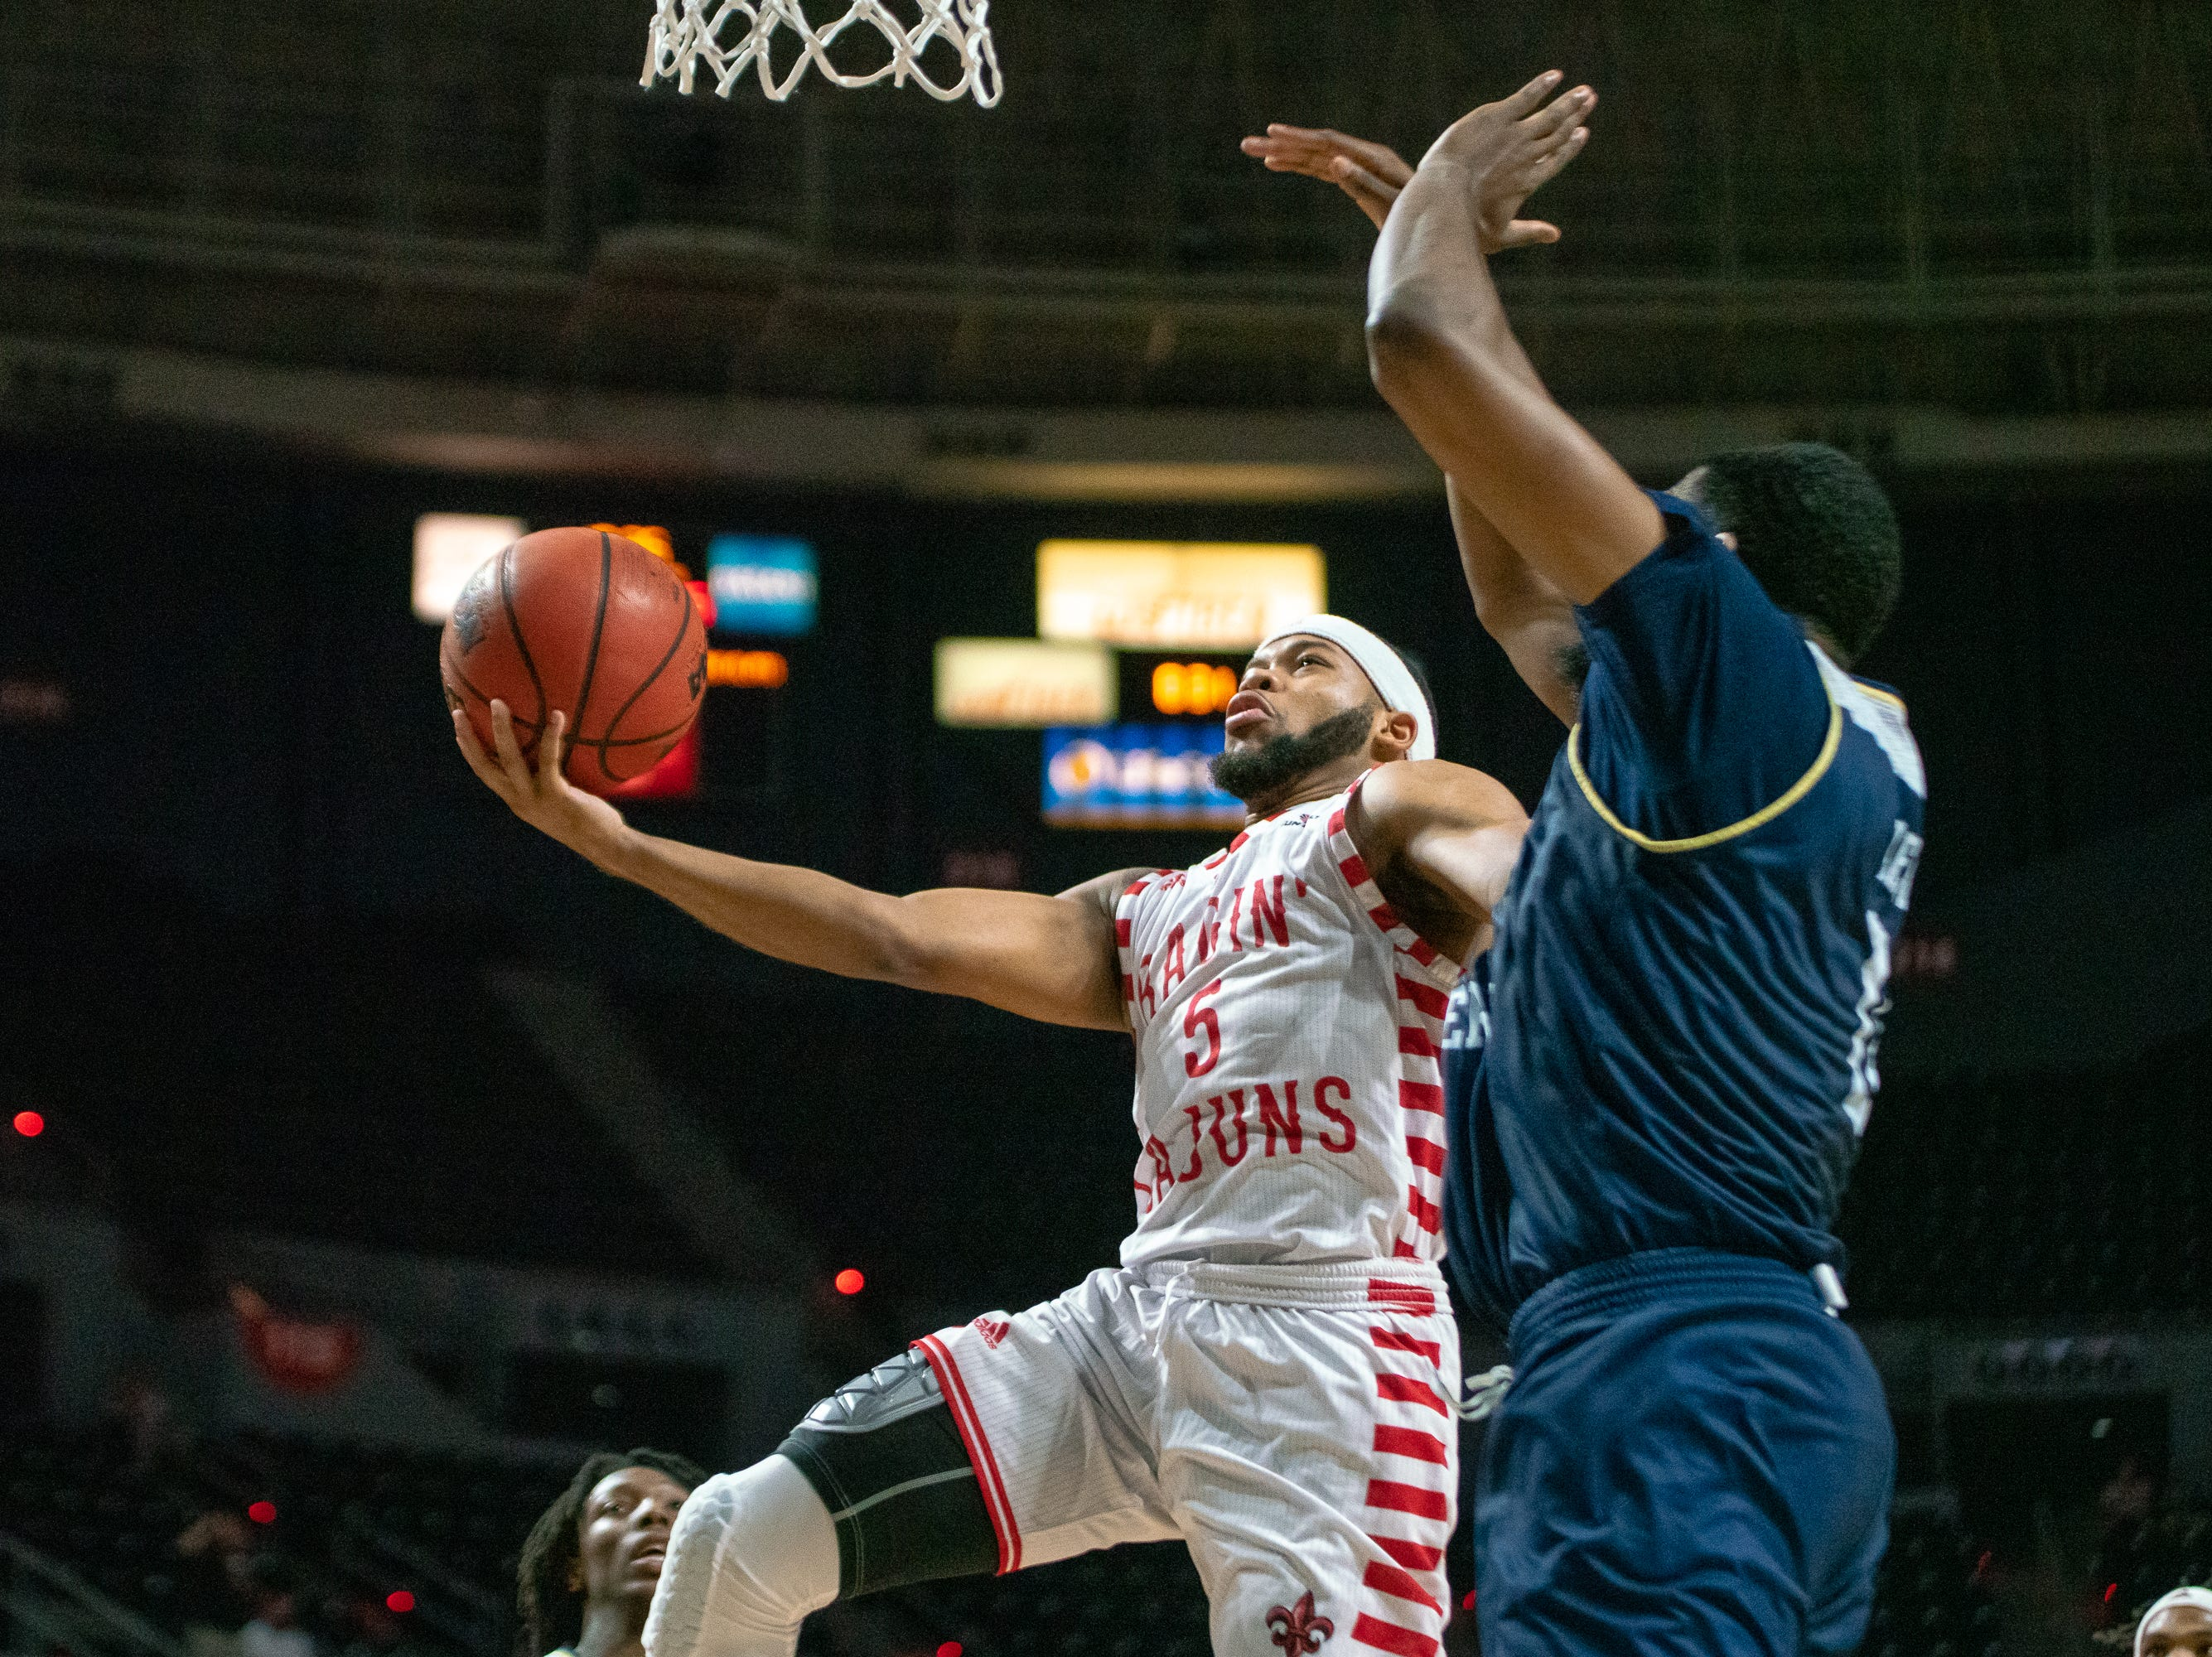 UL's Trajan Wesley takes the ball to the basket as the Ragin' Cajuns take on the Georgia Southern Eagles at the Cajundome on Feb. 6, 2019.